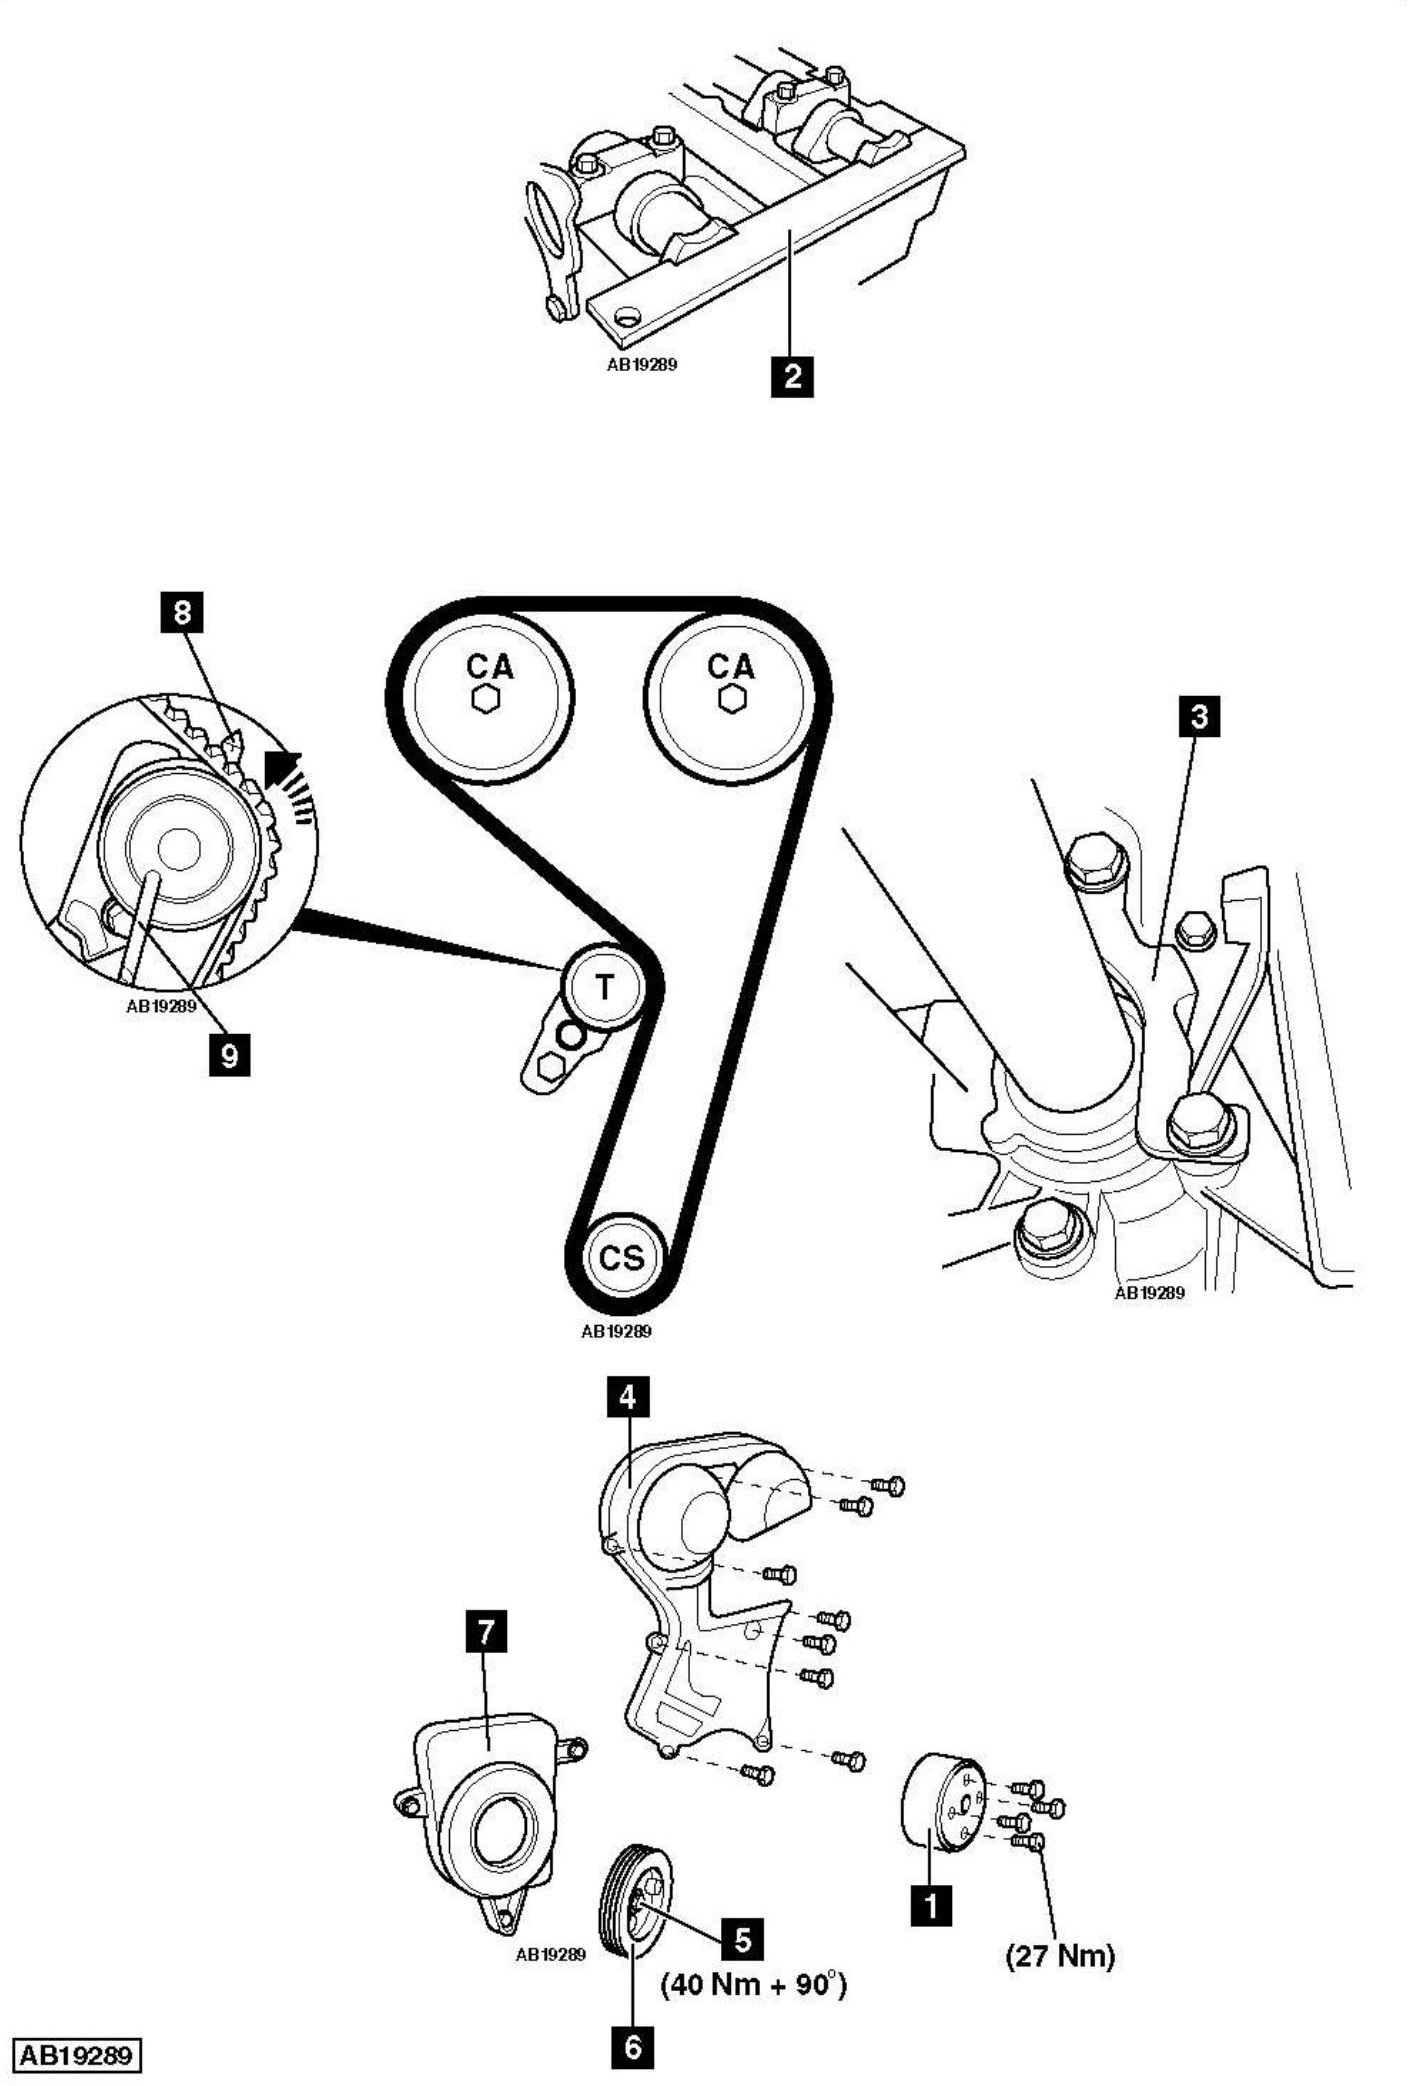 Subaru Water Pump Diagram 2001 Html Com